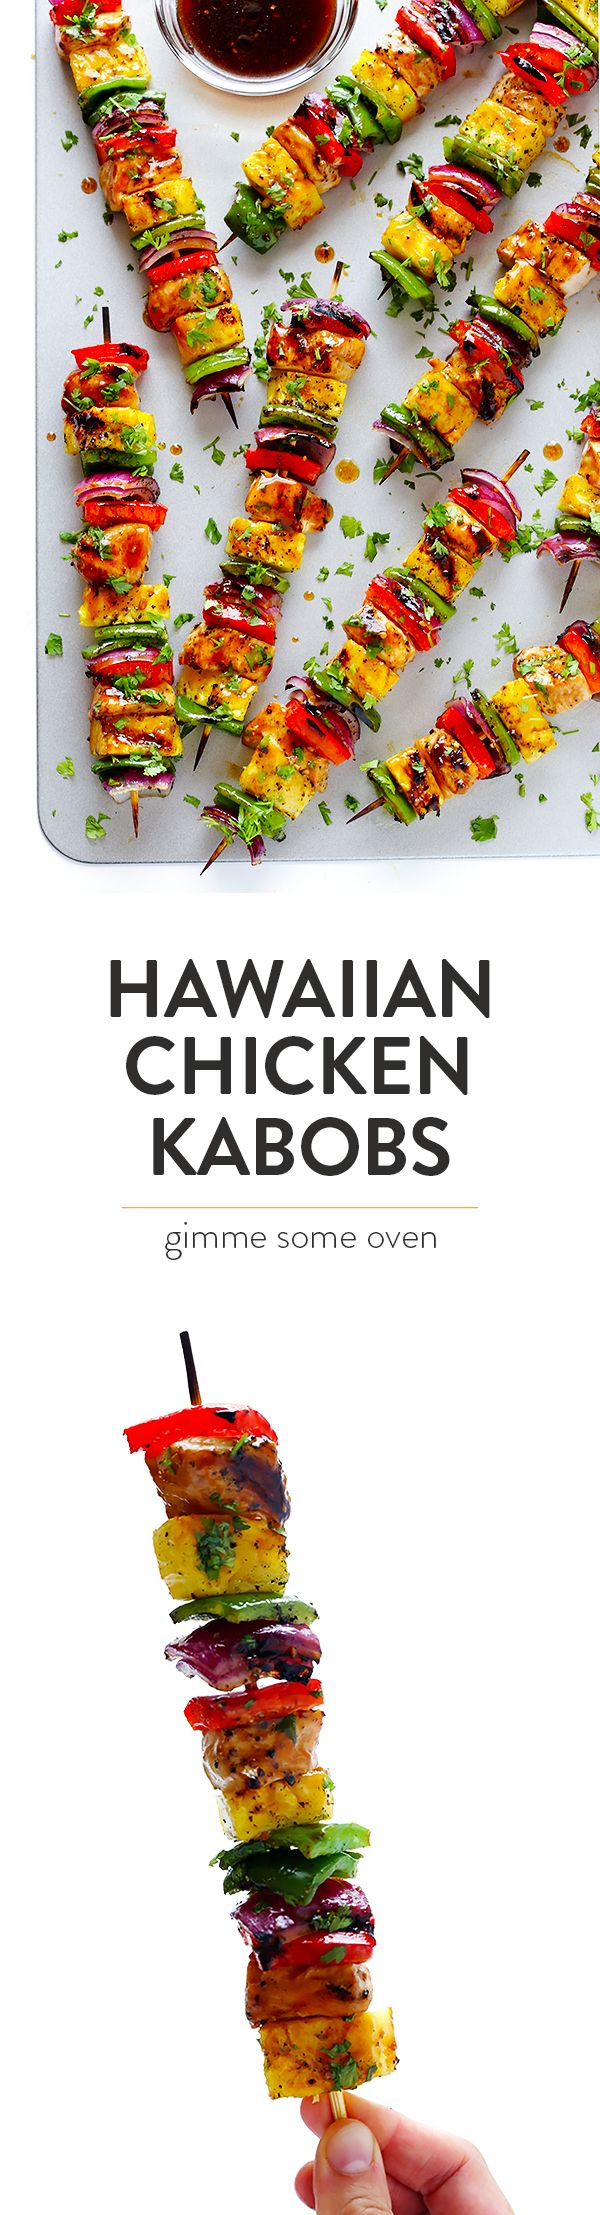 These Rainbow Hawaiian Chicken Kabobs are marinated and basted in a tasty teriyaki sauce, then grilled to perfection and sprinkled with cilantro. So delicious! | gimmesomeoven.com